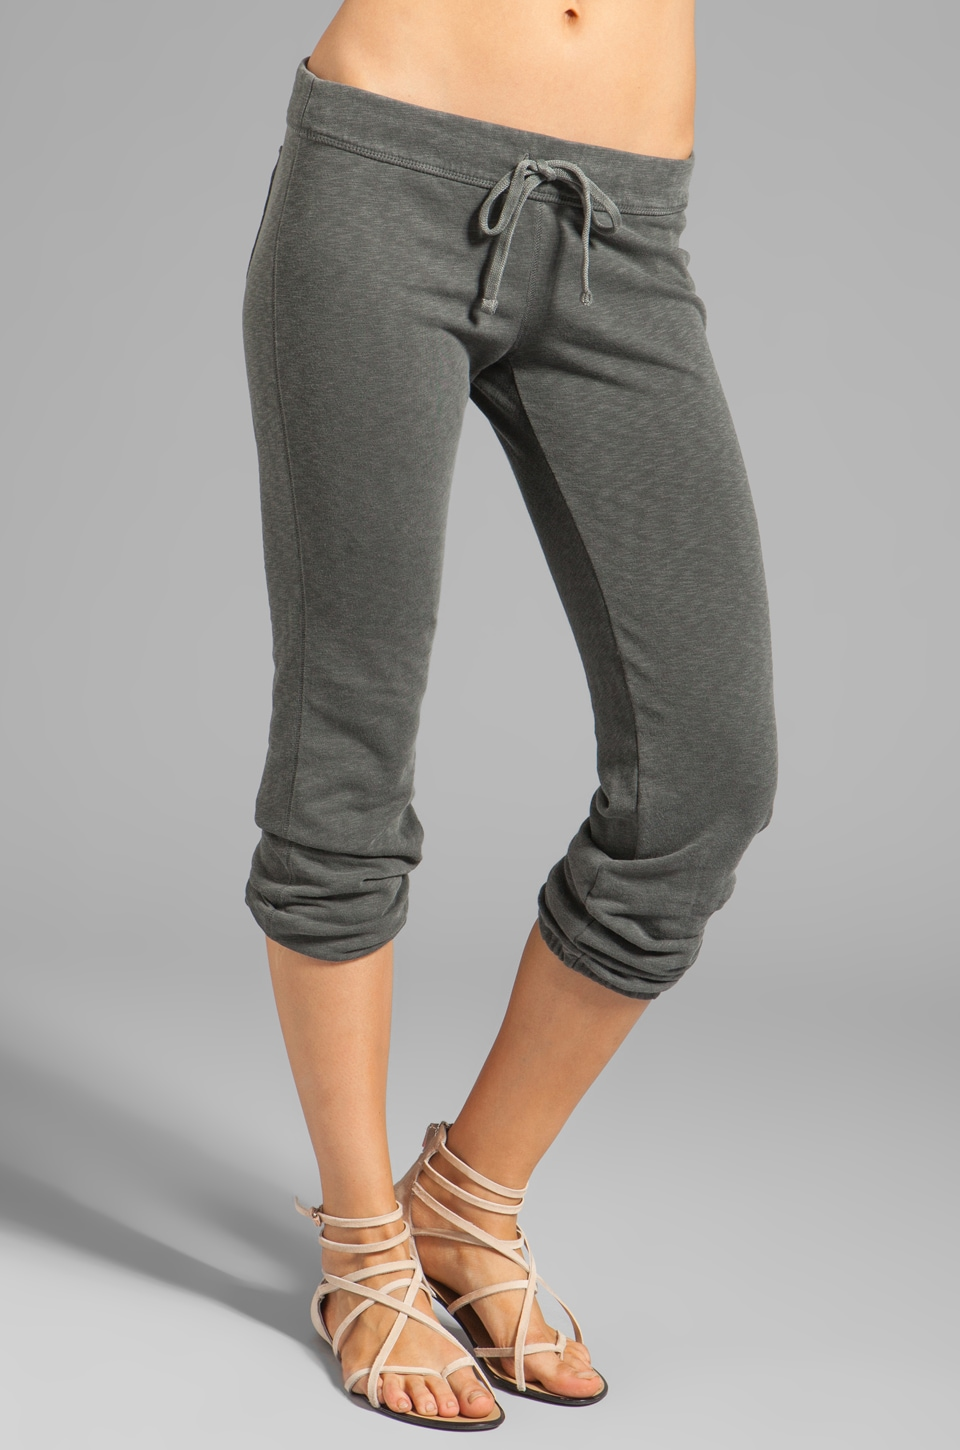 James Perse Vintage Cotton Genie Pant in Charcoal